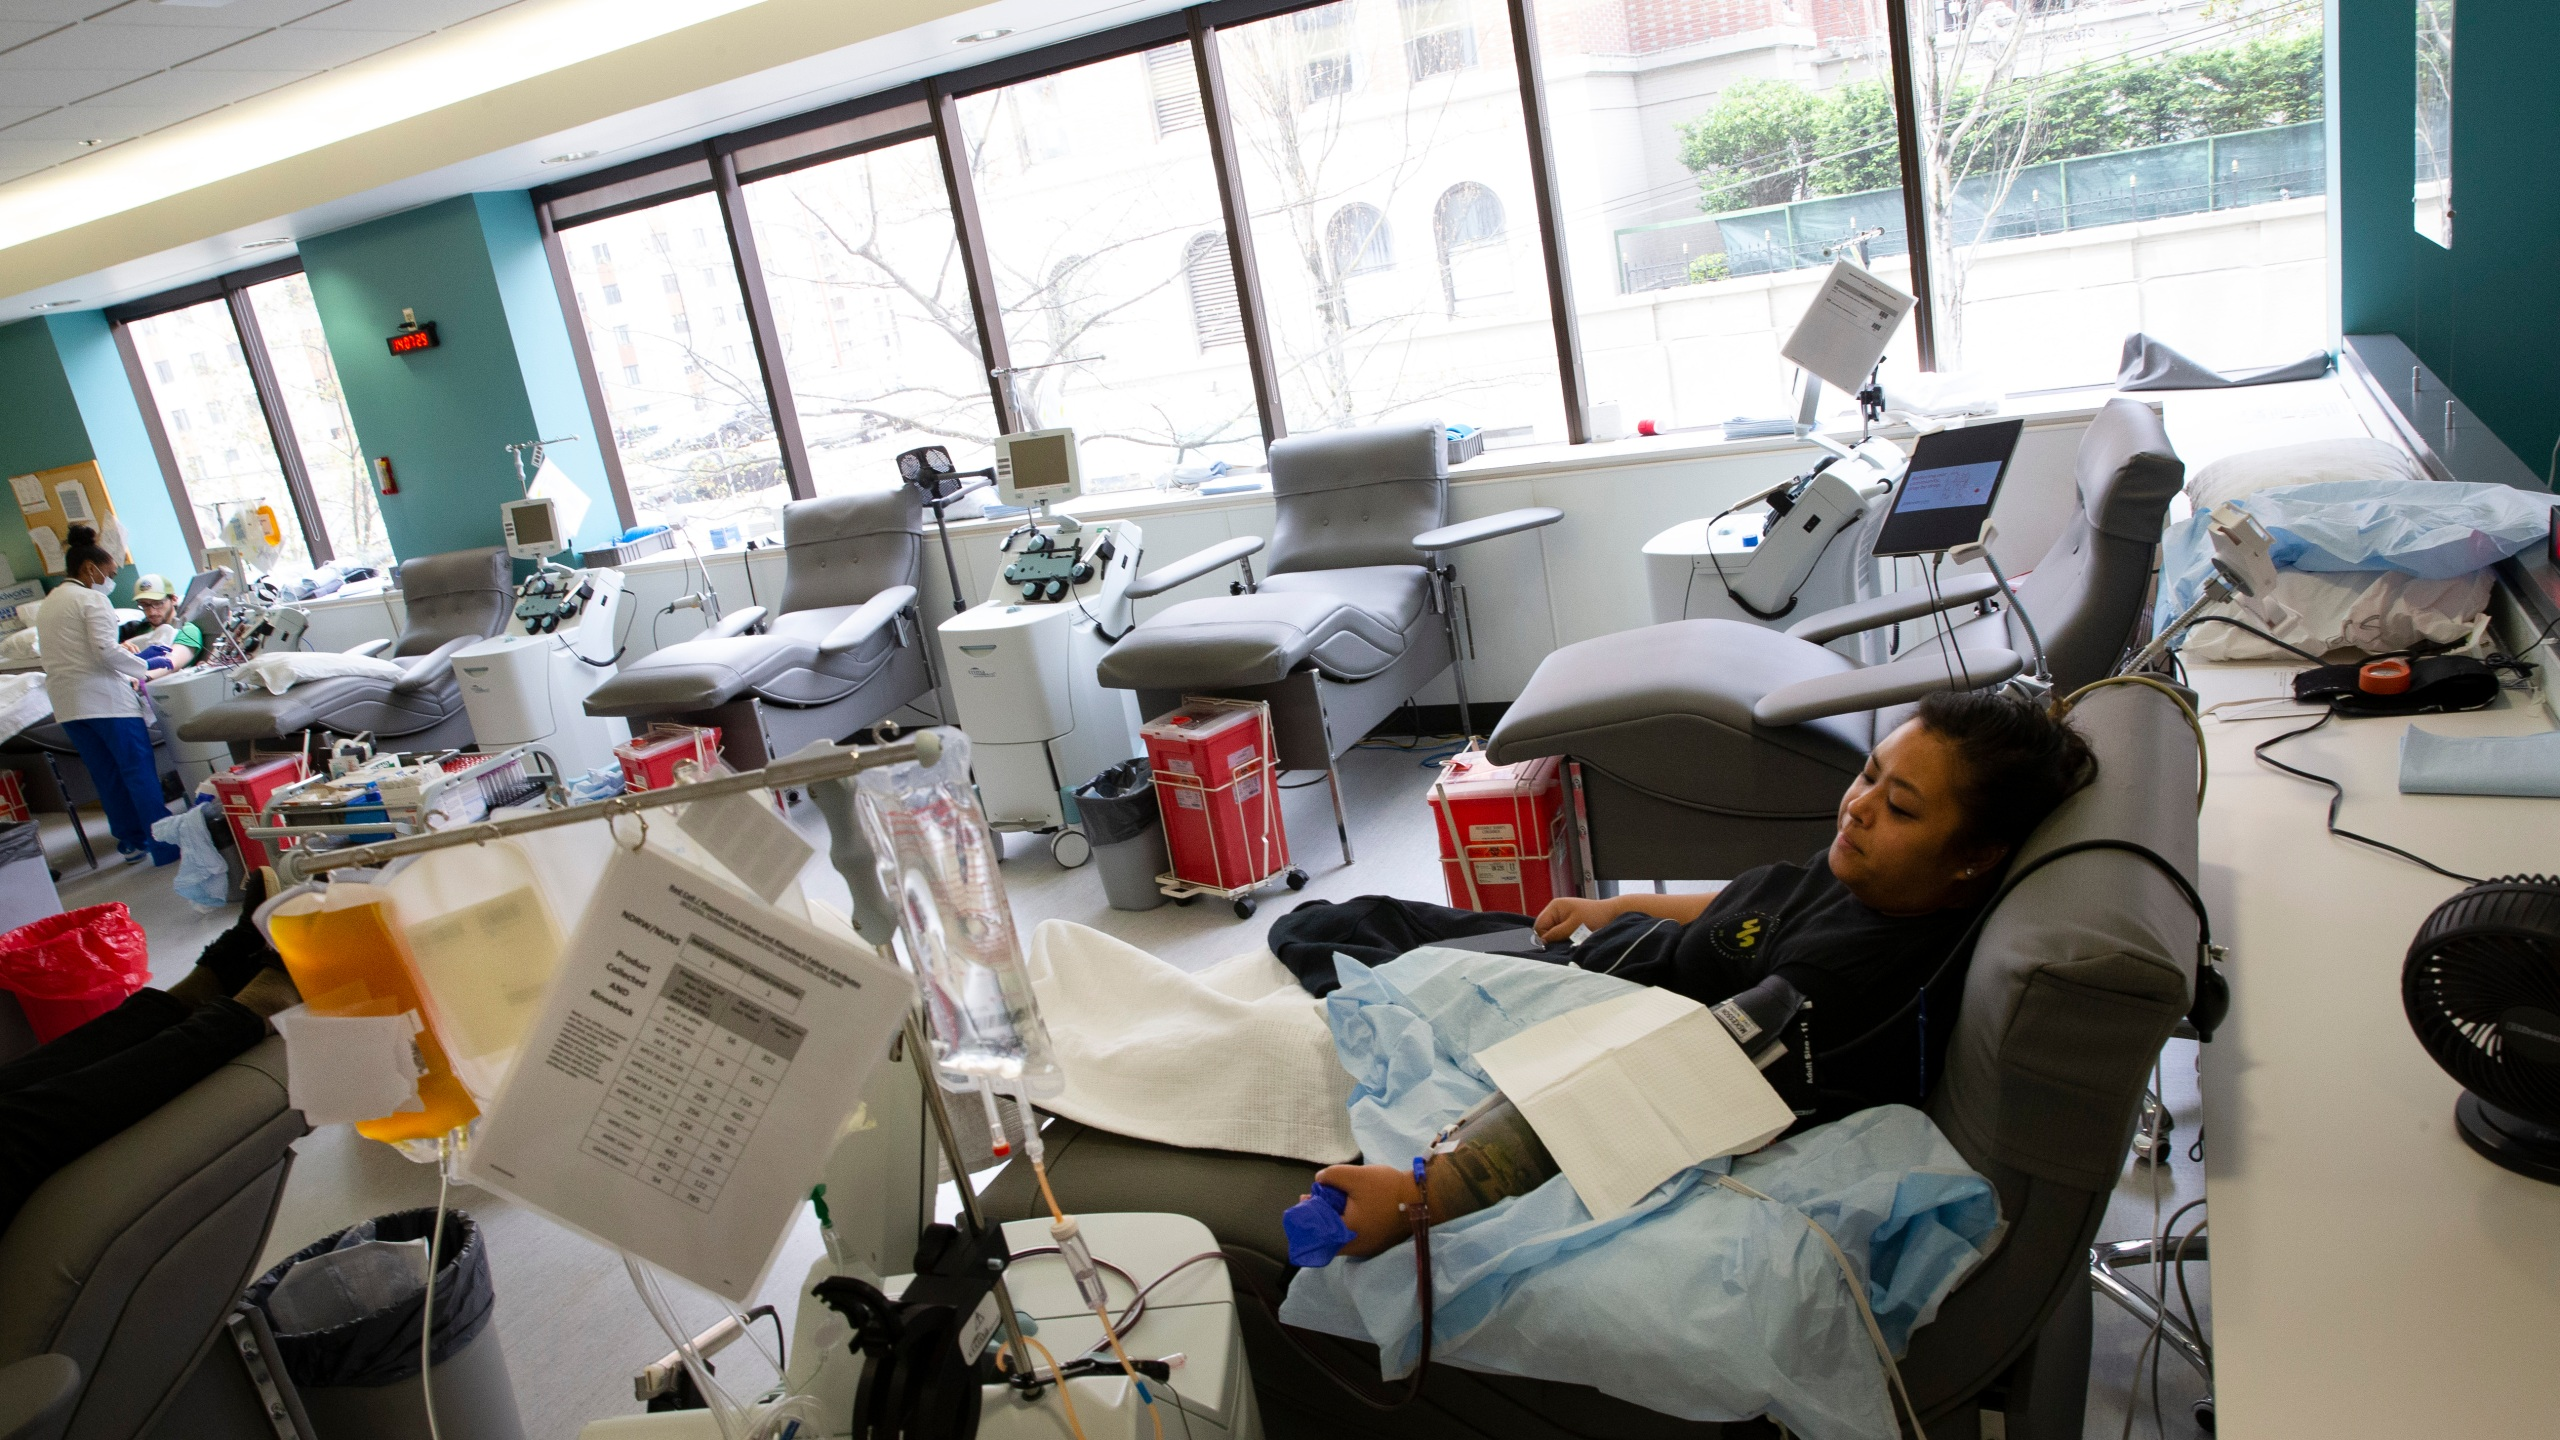 Melissa Cruz donates convalescent plasma at Bloodworks Northwest on April 17, 2020 in Seattle, Washington. (Karen Ducey/Getty Images)